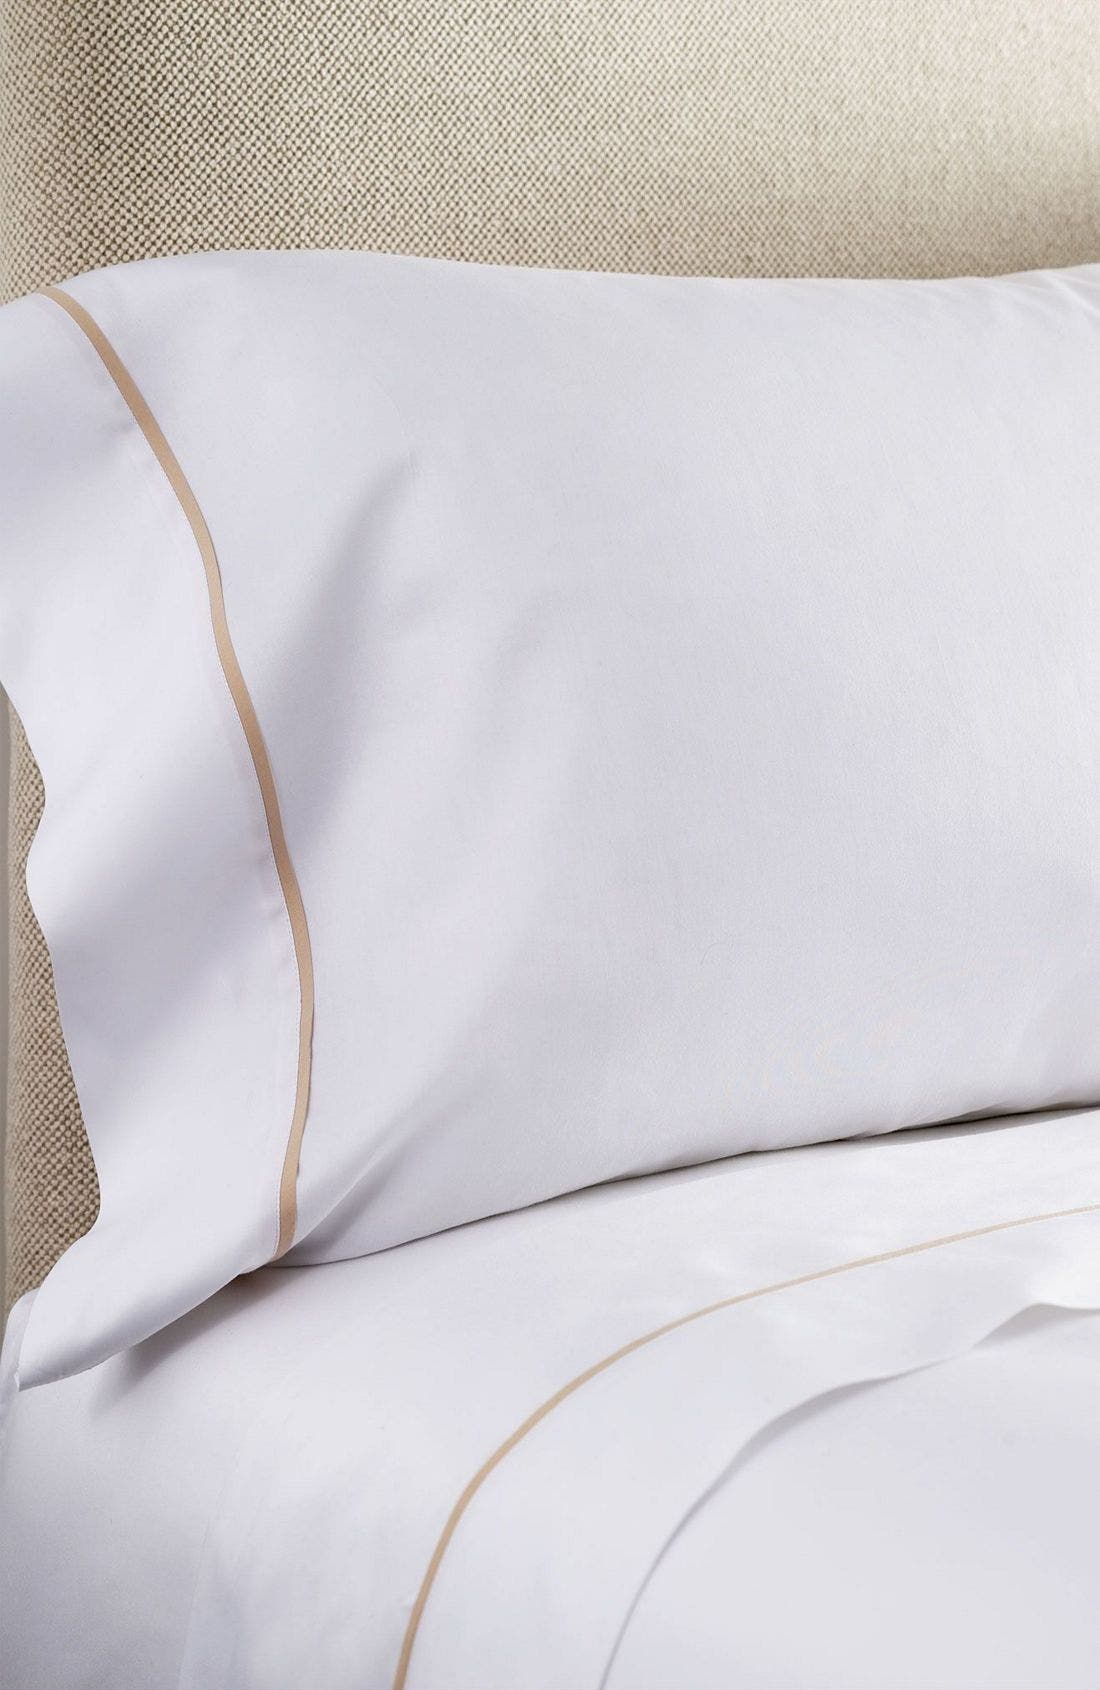 Westin Heavenly Bed<sup>®</sup> 300 Thread Count Egyptian Cotton Luxe Pillowcase,                         Main,                         color,